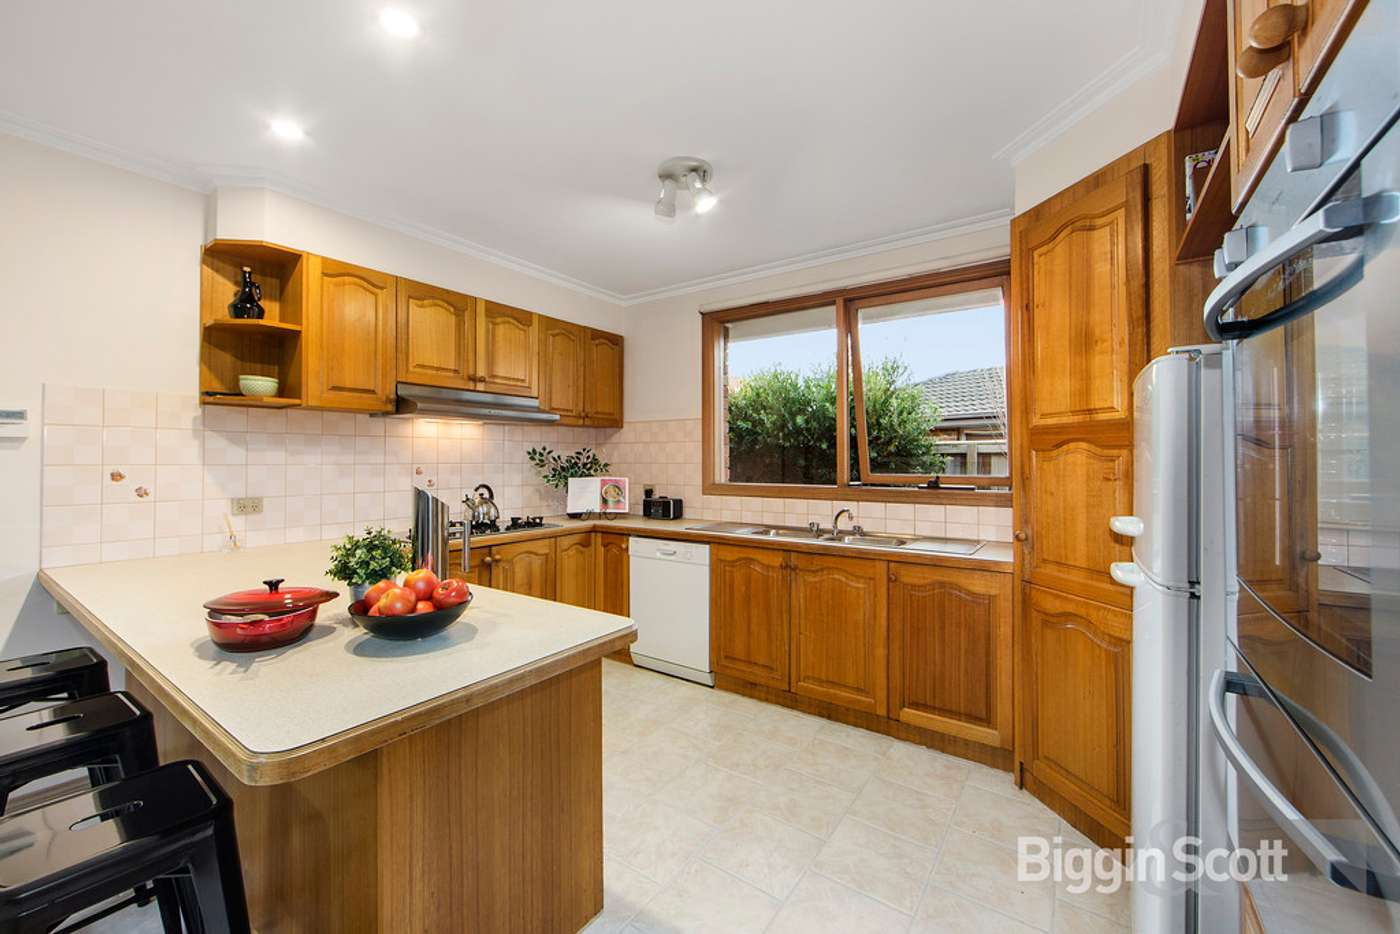 Fifth view of Homely house listing, 10 Bemboka Court, Wantirna South VIC 3152